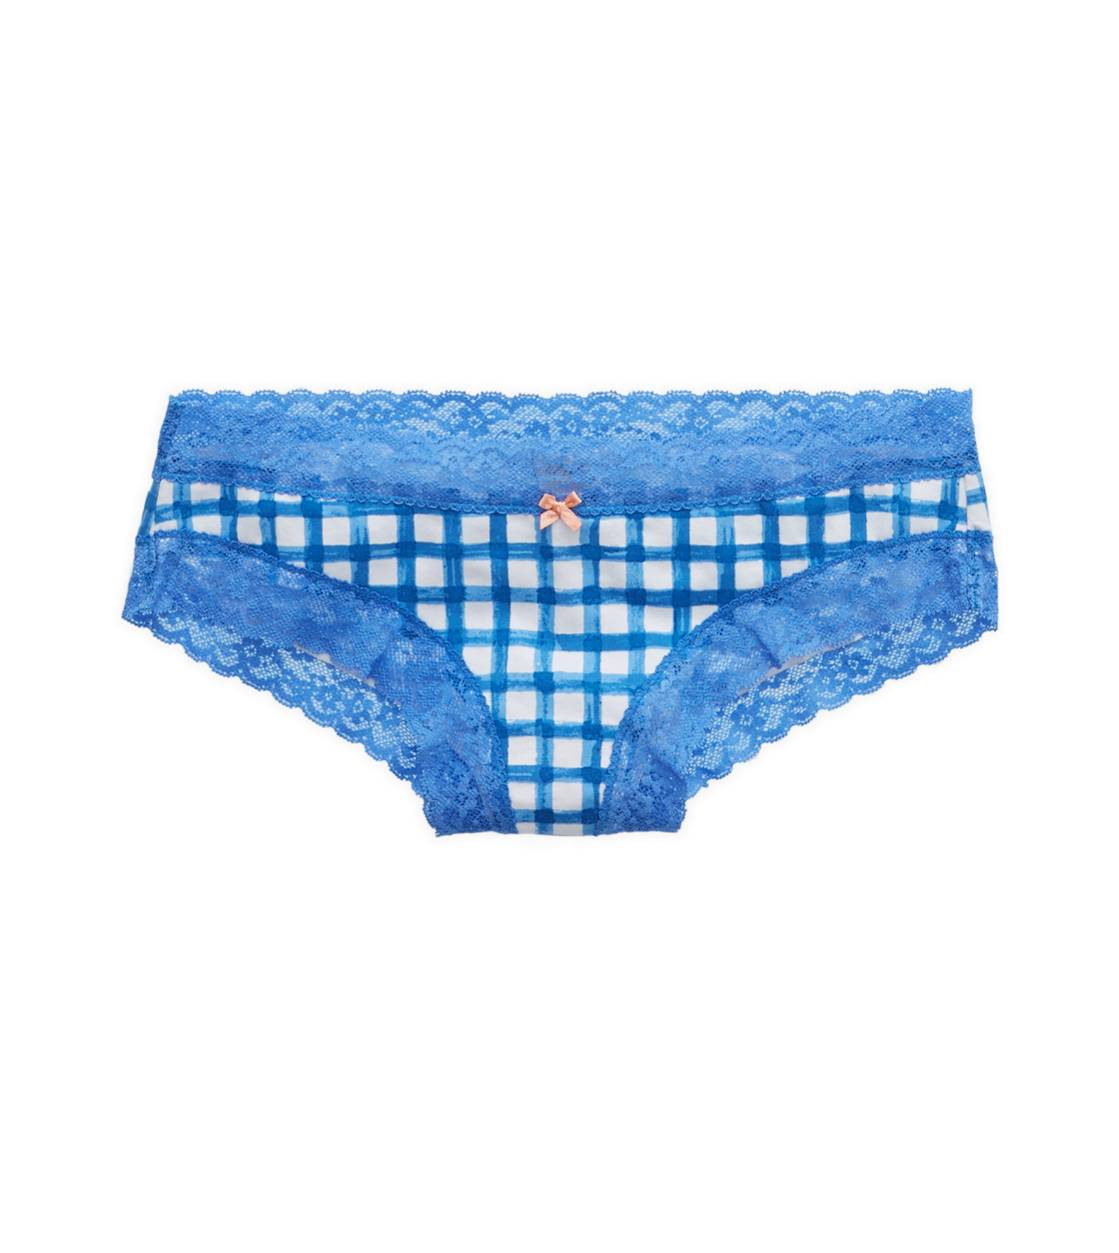 Rome Blue Aerie Lace Trim Cheeky